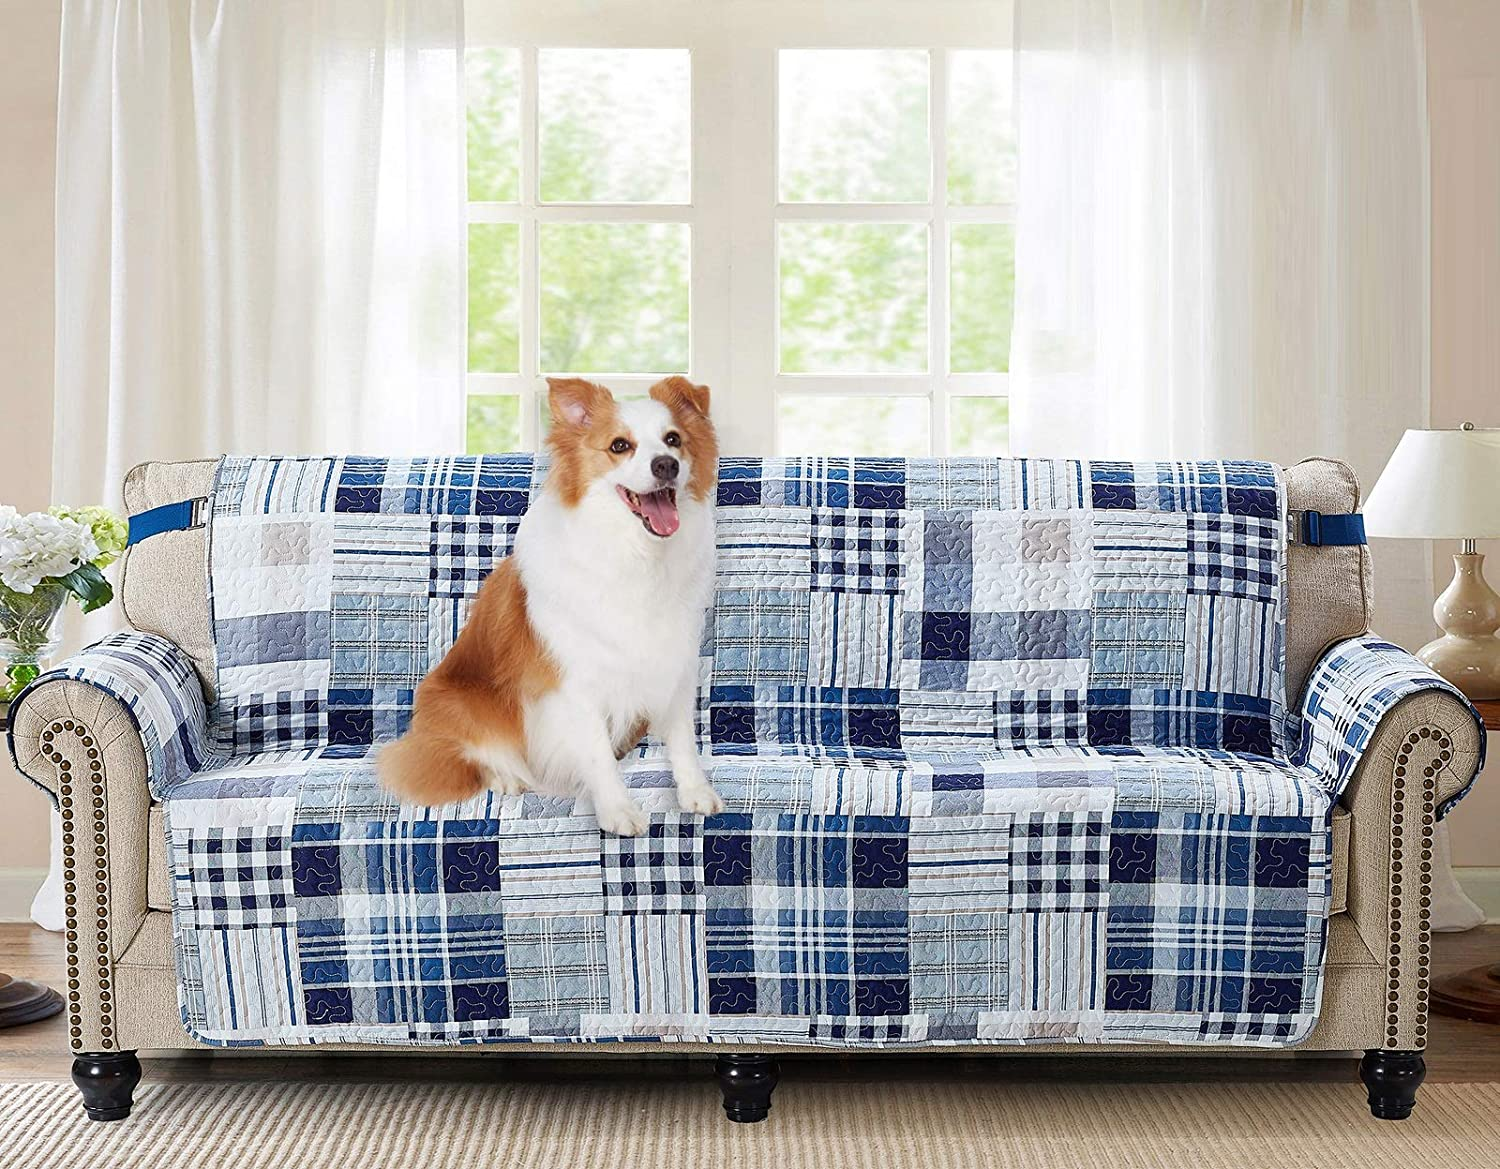 "Brilliant Sunshine Blue Plaids and Stripes Patchwork, Reversible Large Sofa Protector for Seat Width up to 70"", Furniture Slipcover, 2"" Strap, Couch Slip Cover for Pets, Kids, Dogs, Cats, Sofa, Blue"